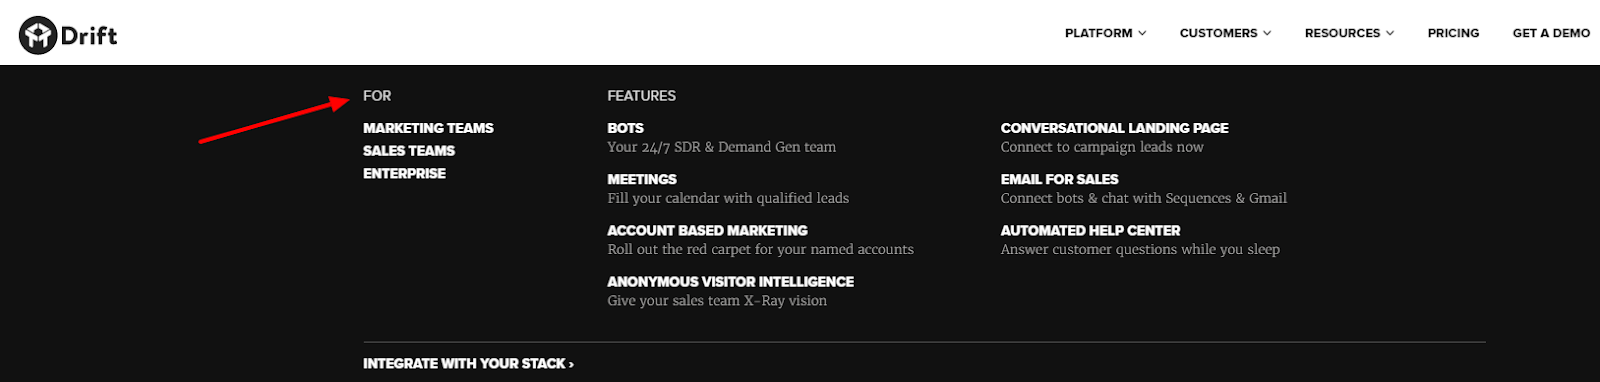 Screenshot from Drift's website shows their persona-driven navigation and landing pages.